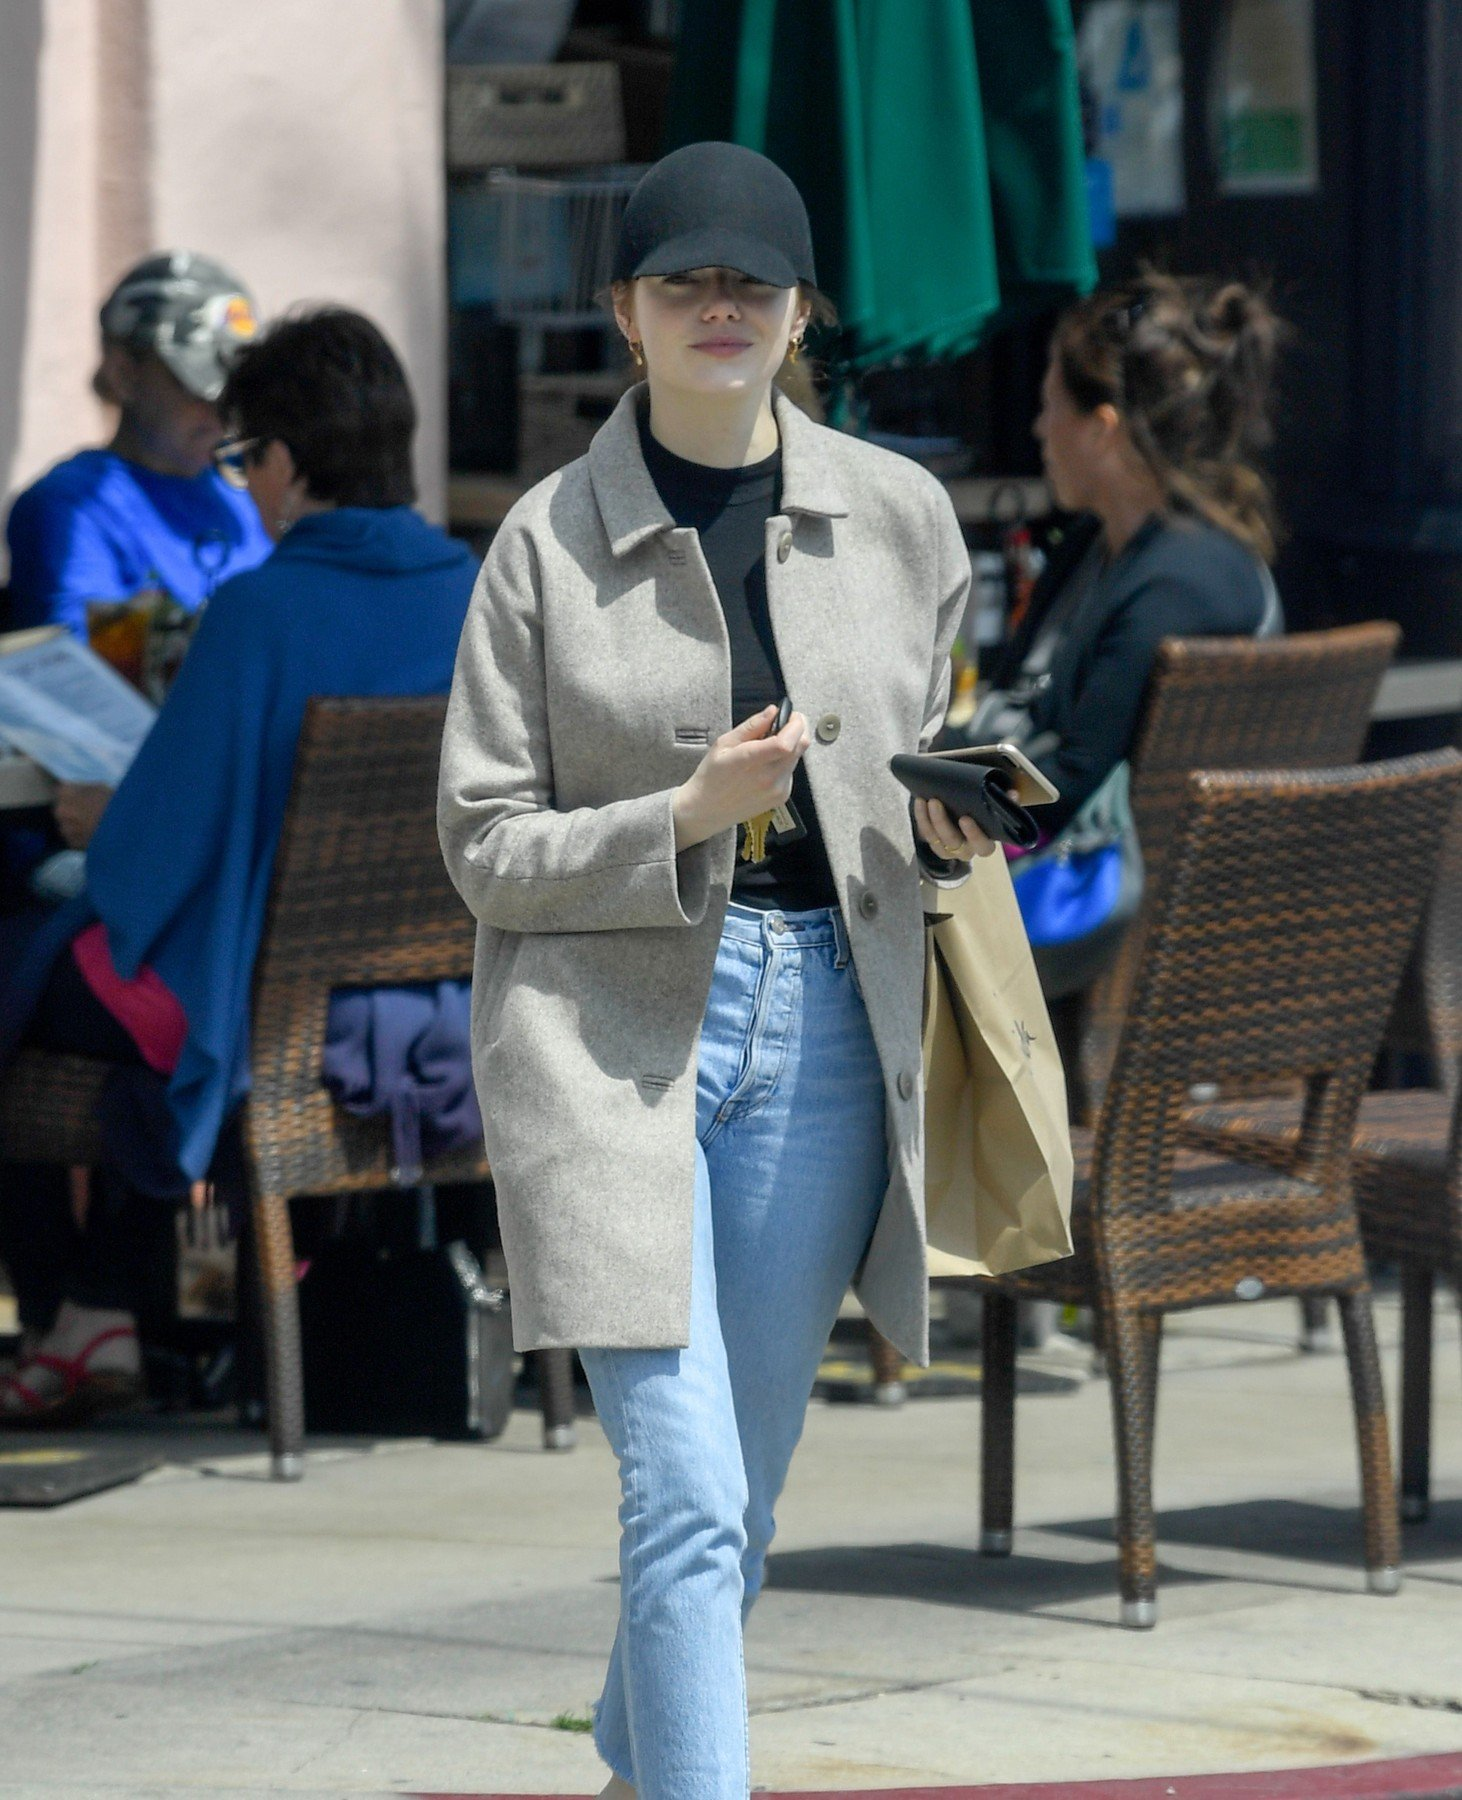 EXCLUSIVE: Emma Stone makes a rare public outing as she is seen wearing an engagement ring amid rumors her boyfriend Dave Mccary proposed to her over the holidays. 03 Apr 2019, Image: 424253017, License: Rights-managed, Restrictions: World Rights, Model Release: no, Credit line: Profimedia, Mega Agency